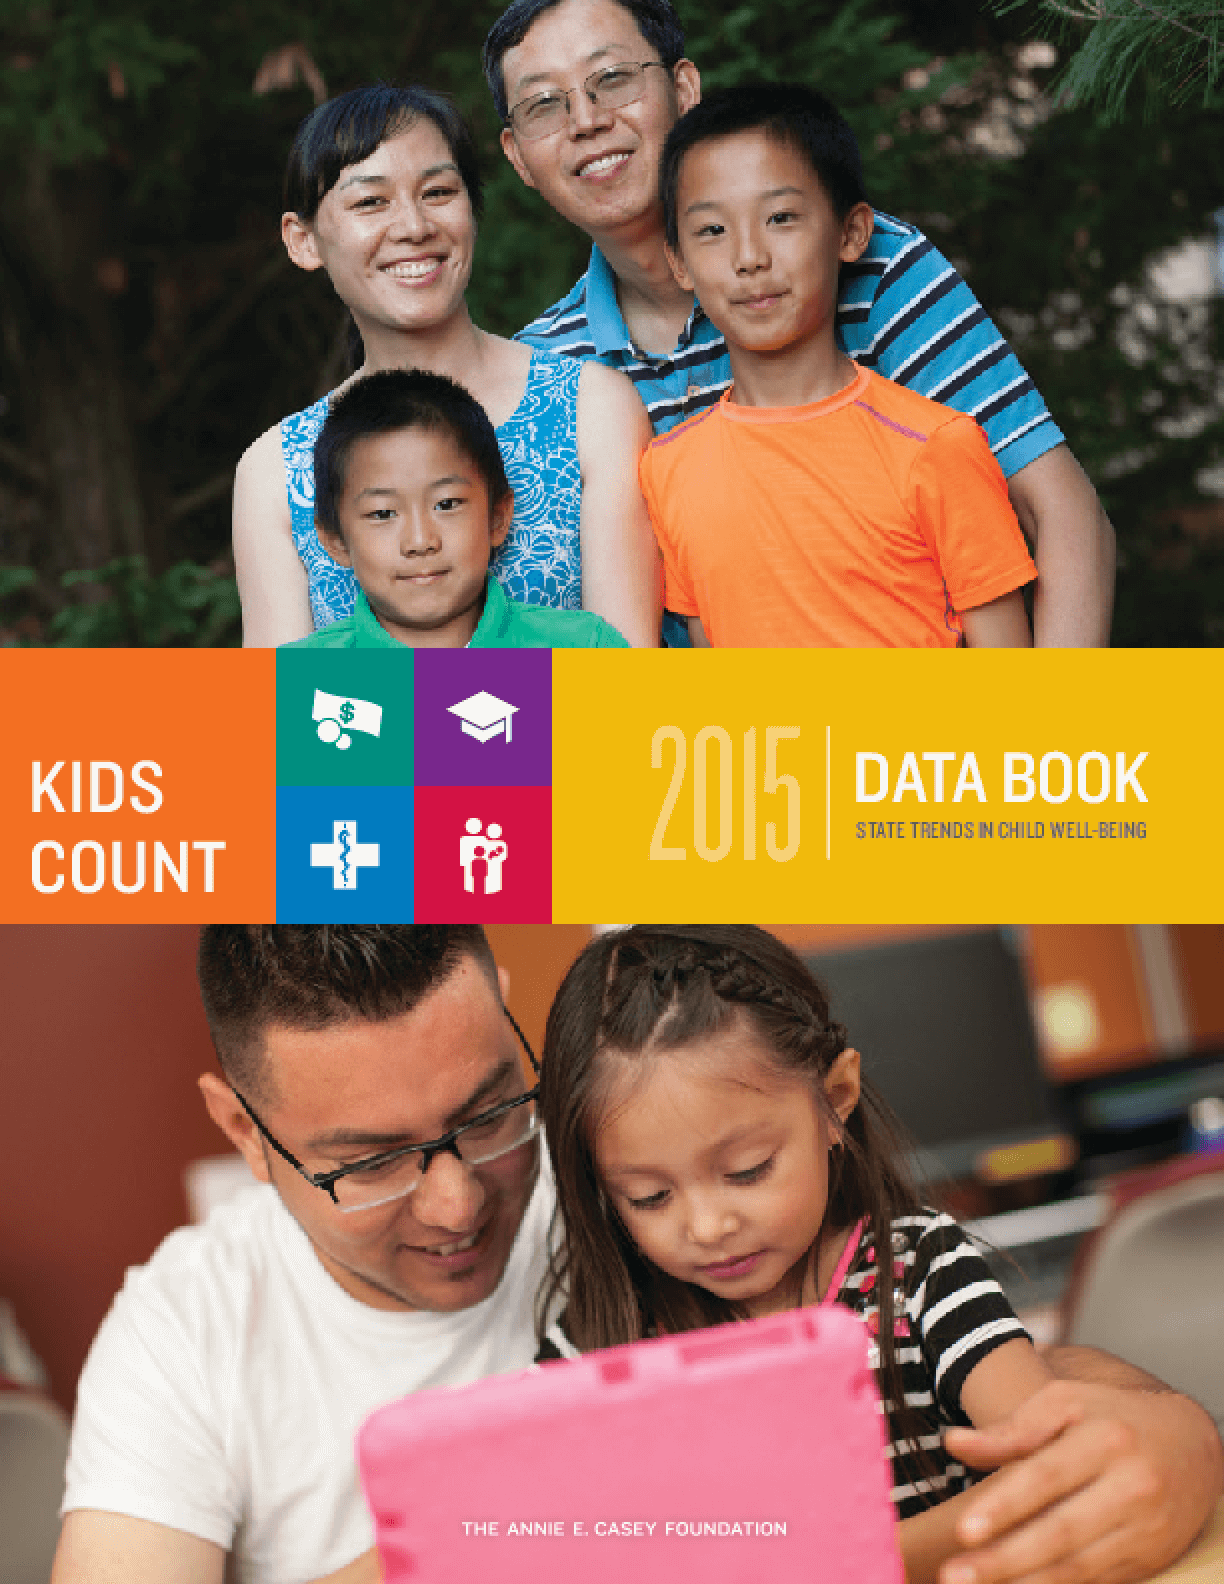 2015 Kids Count Data Book: State Trends In Child Well-Being